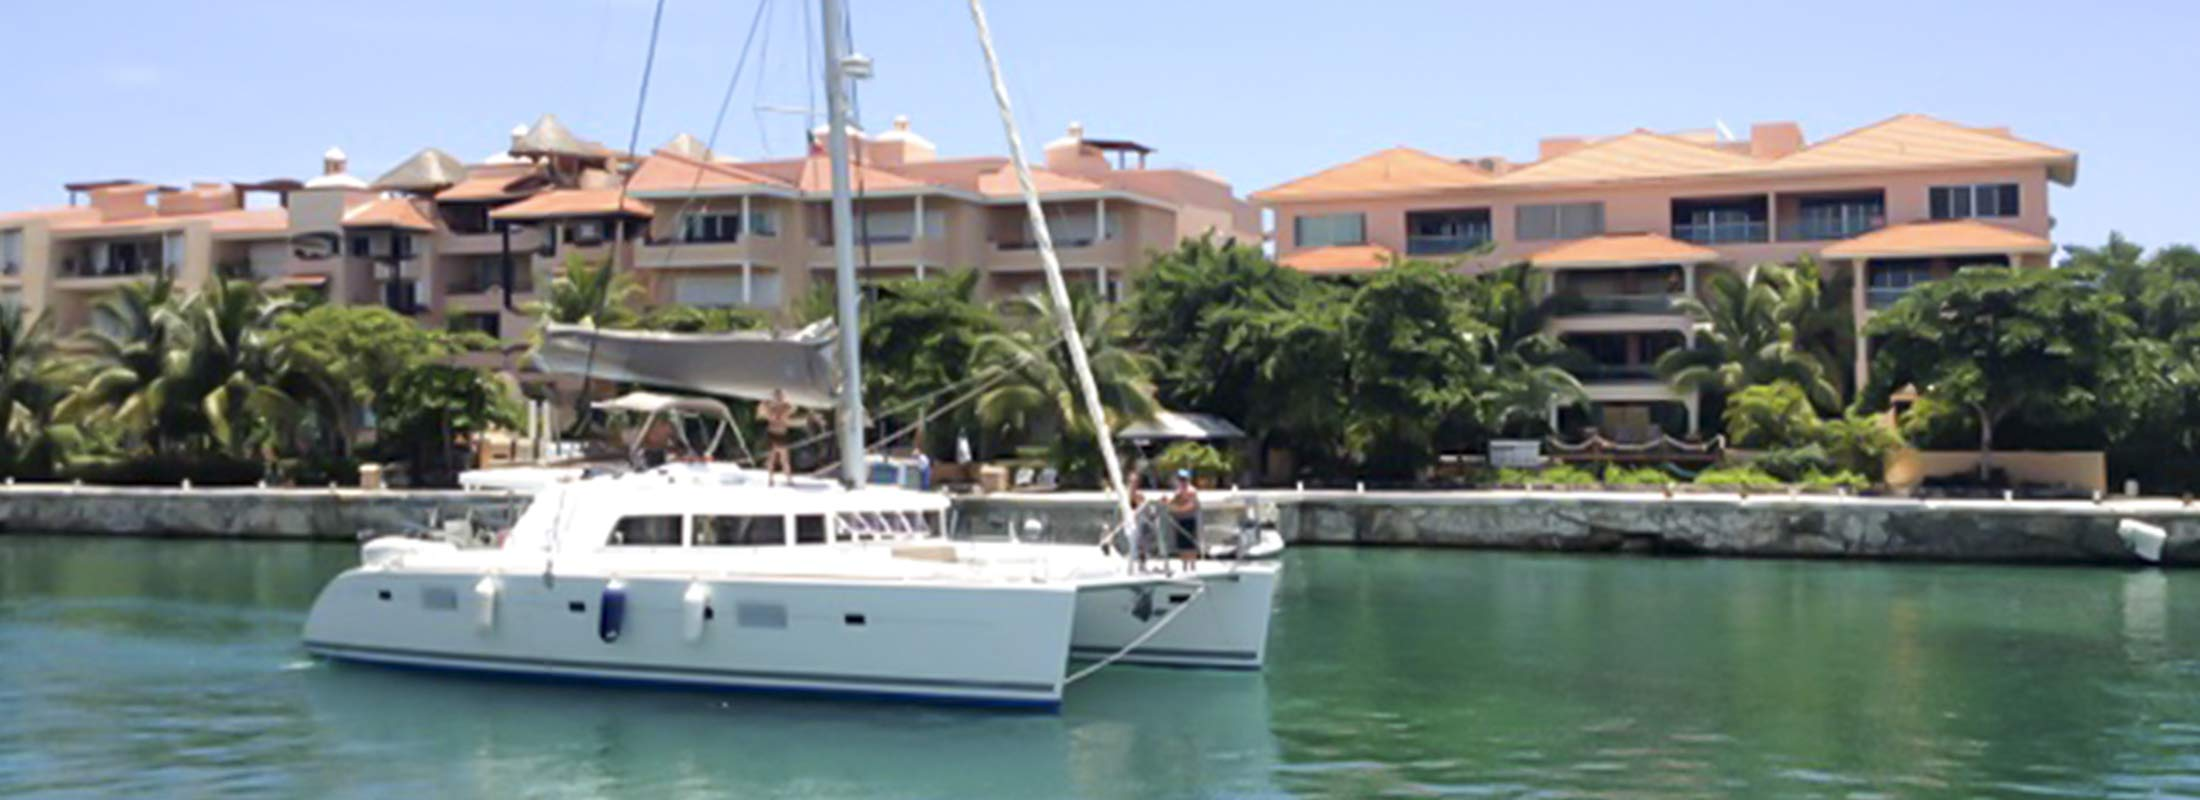 Whispers Sailing Yacht for Charter Carribean Sea The Bahamas slider 2